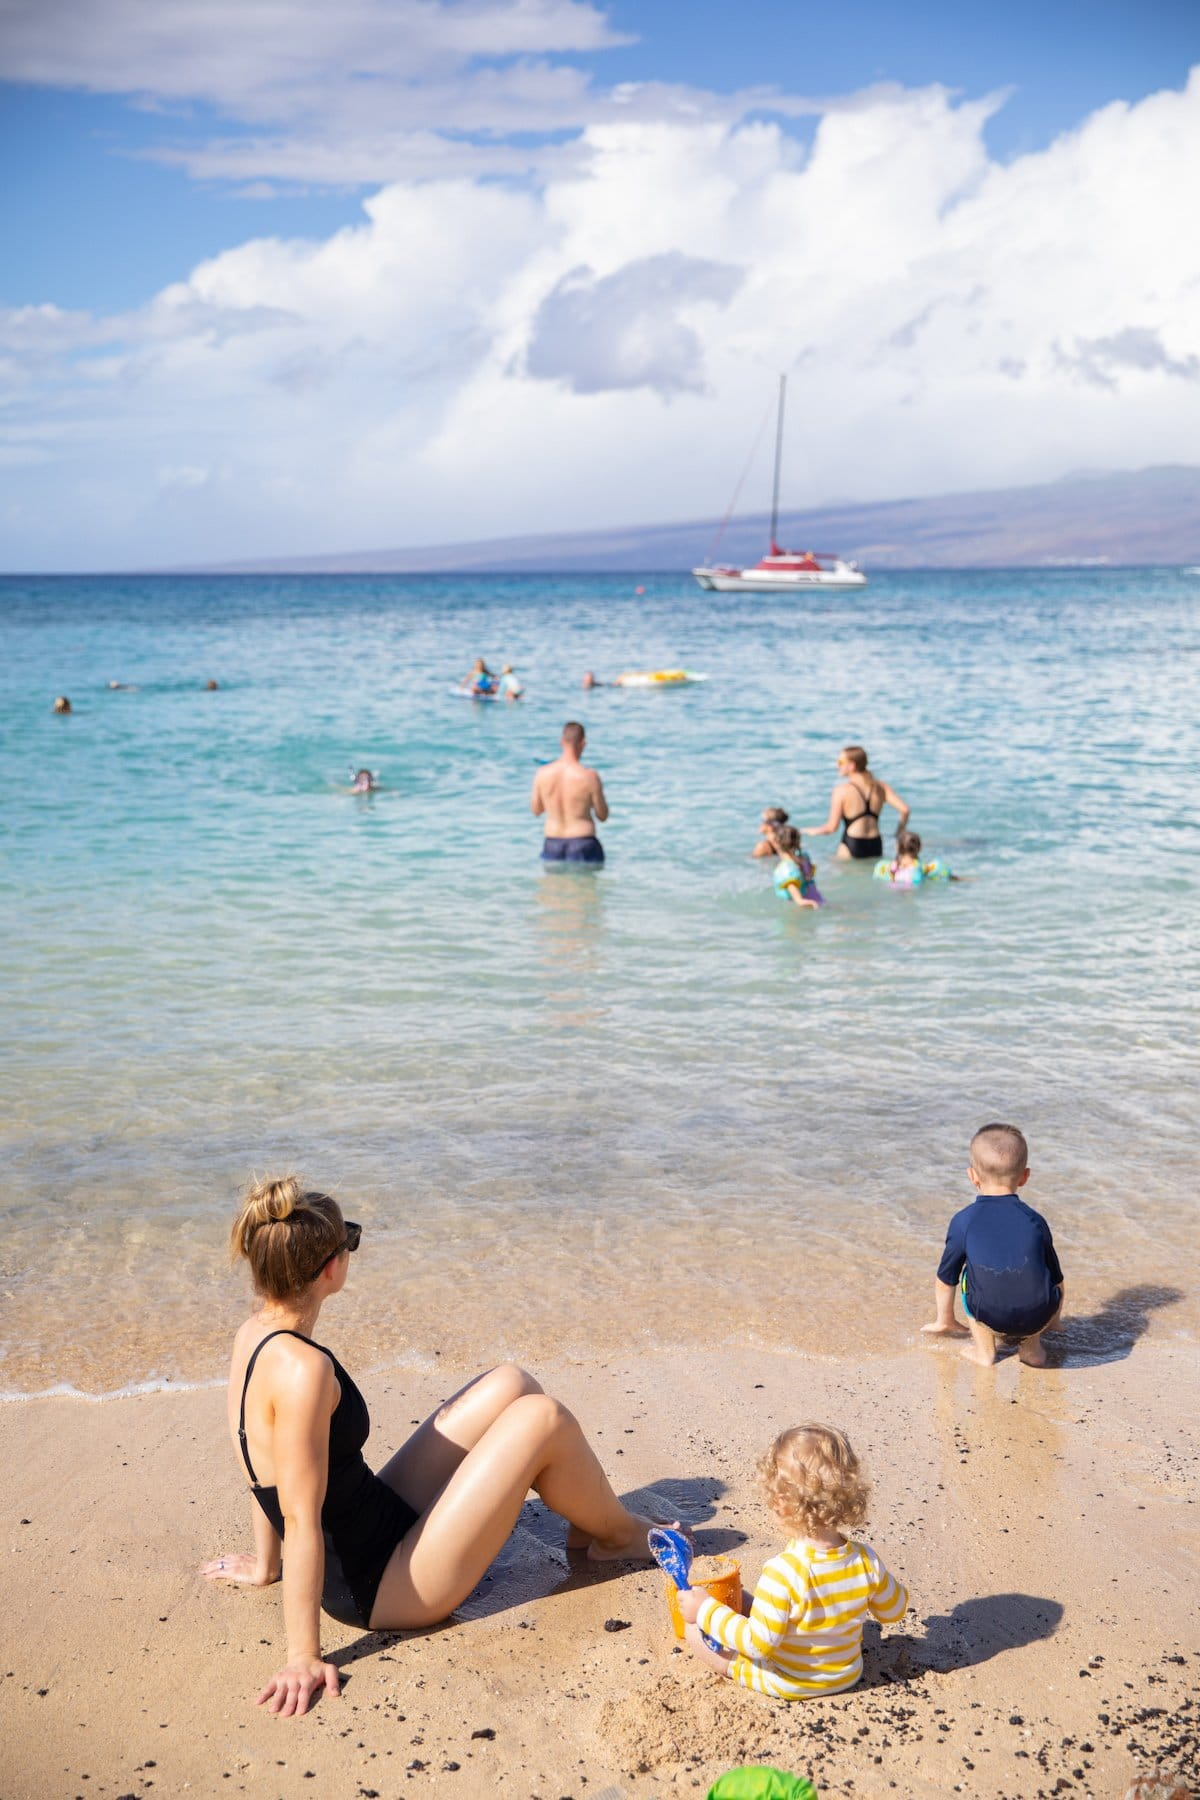 parent and kids playing in shallow ocean water and sand